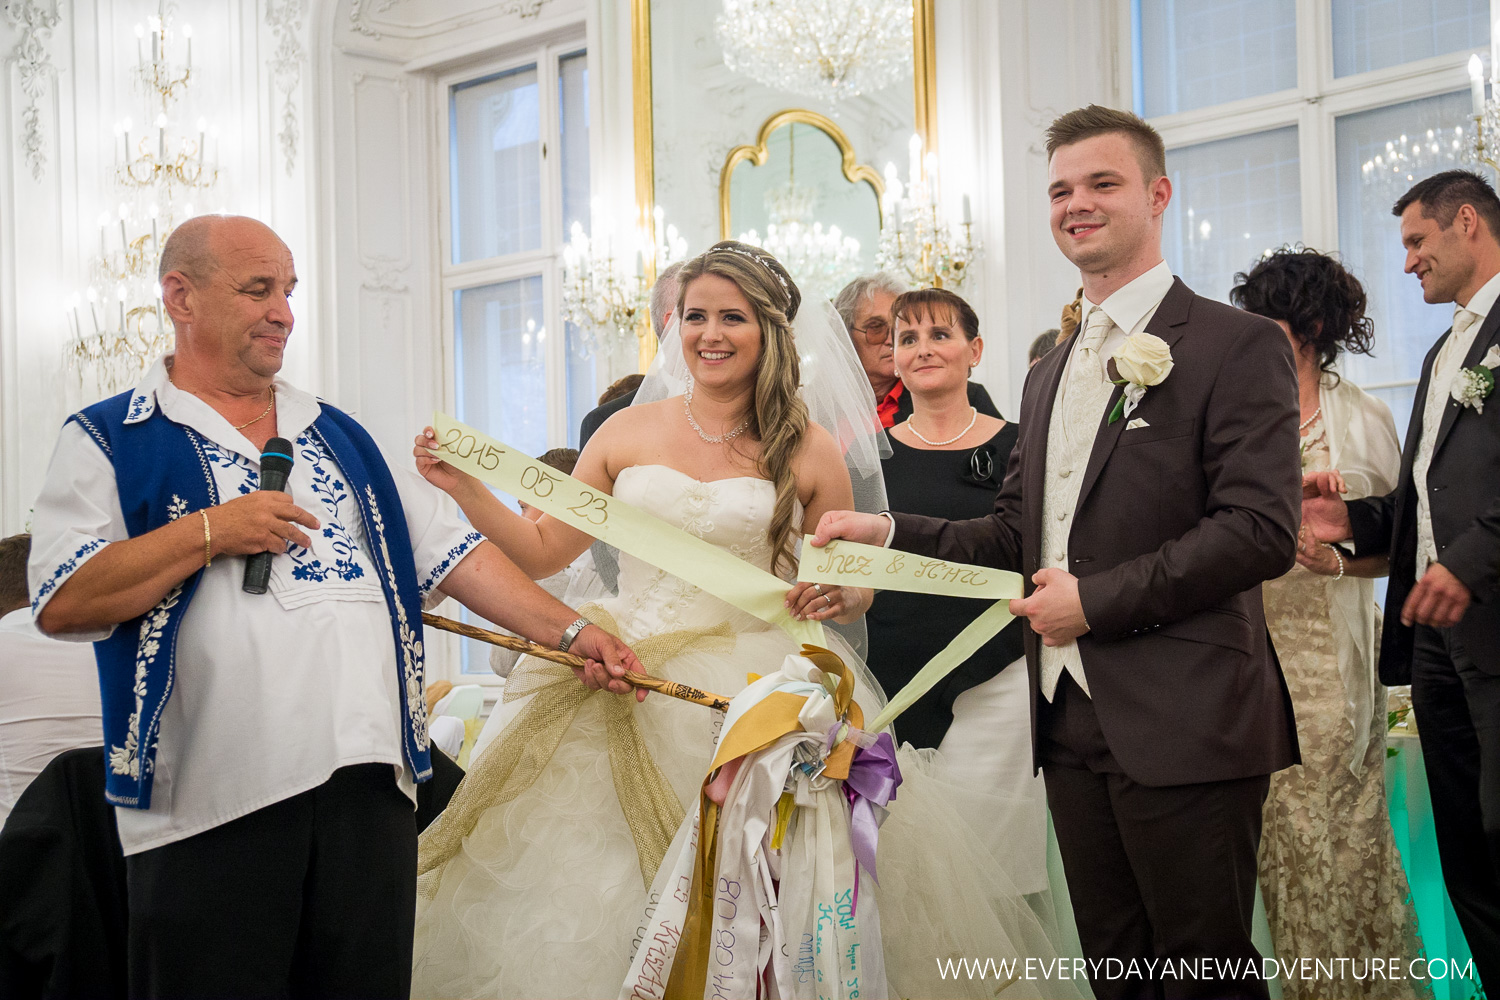 [SqSp1500-023] Budapest - Inez and Arni's Wedding!-174.jpg